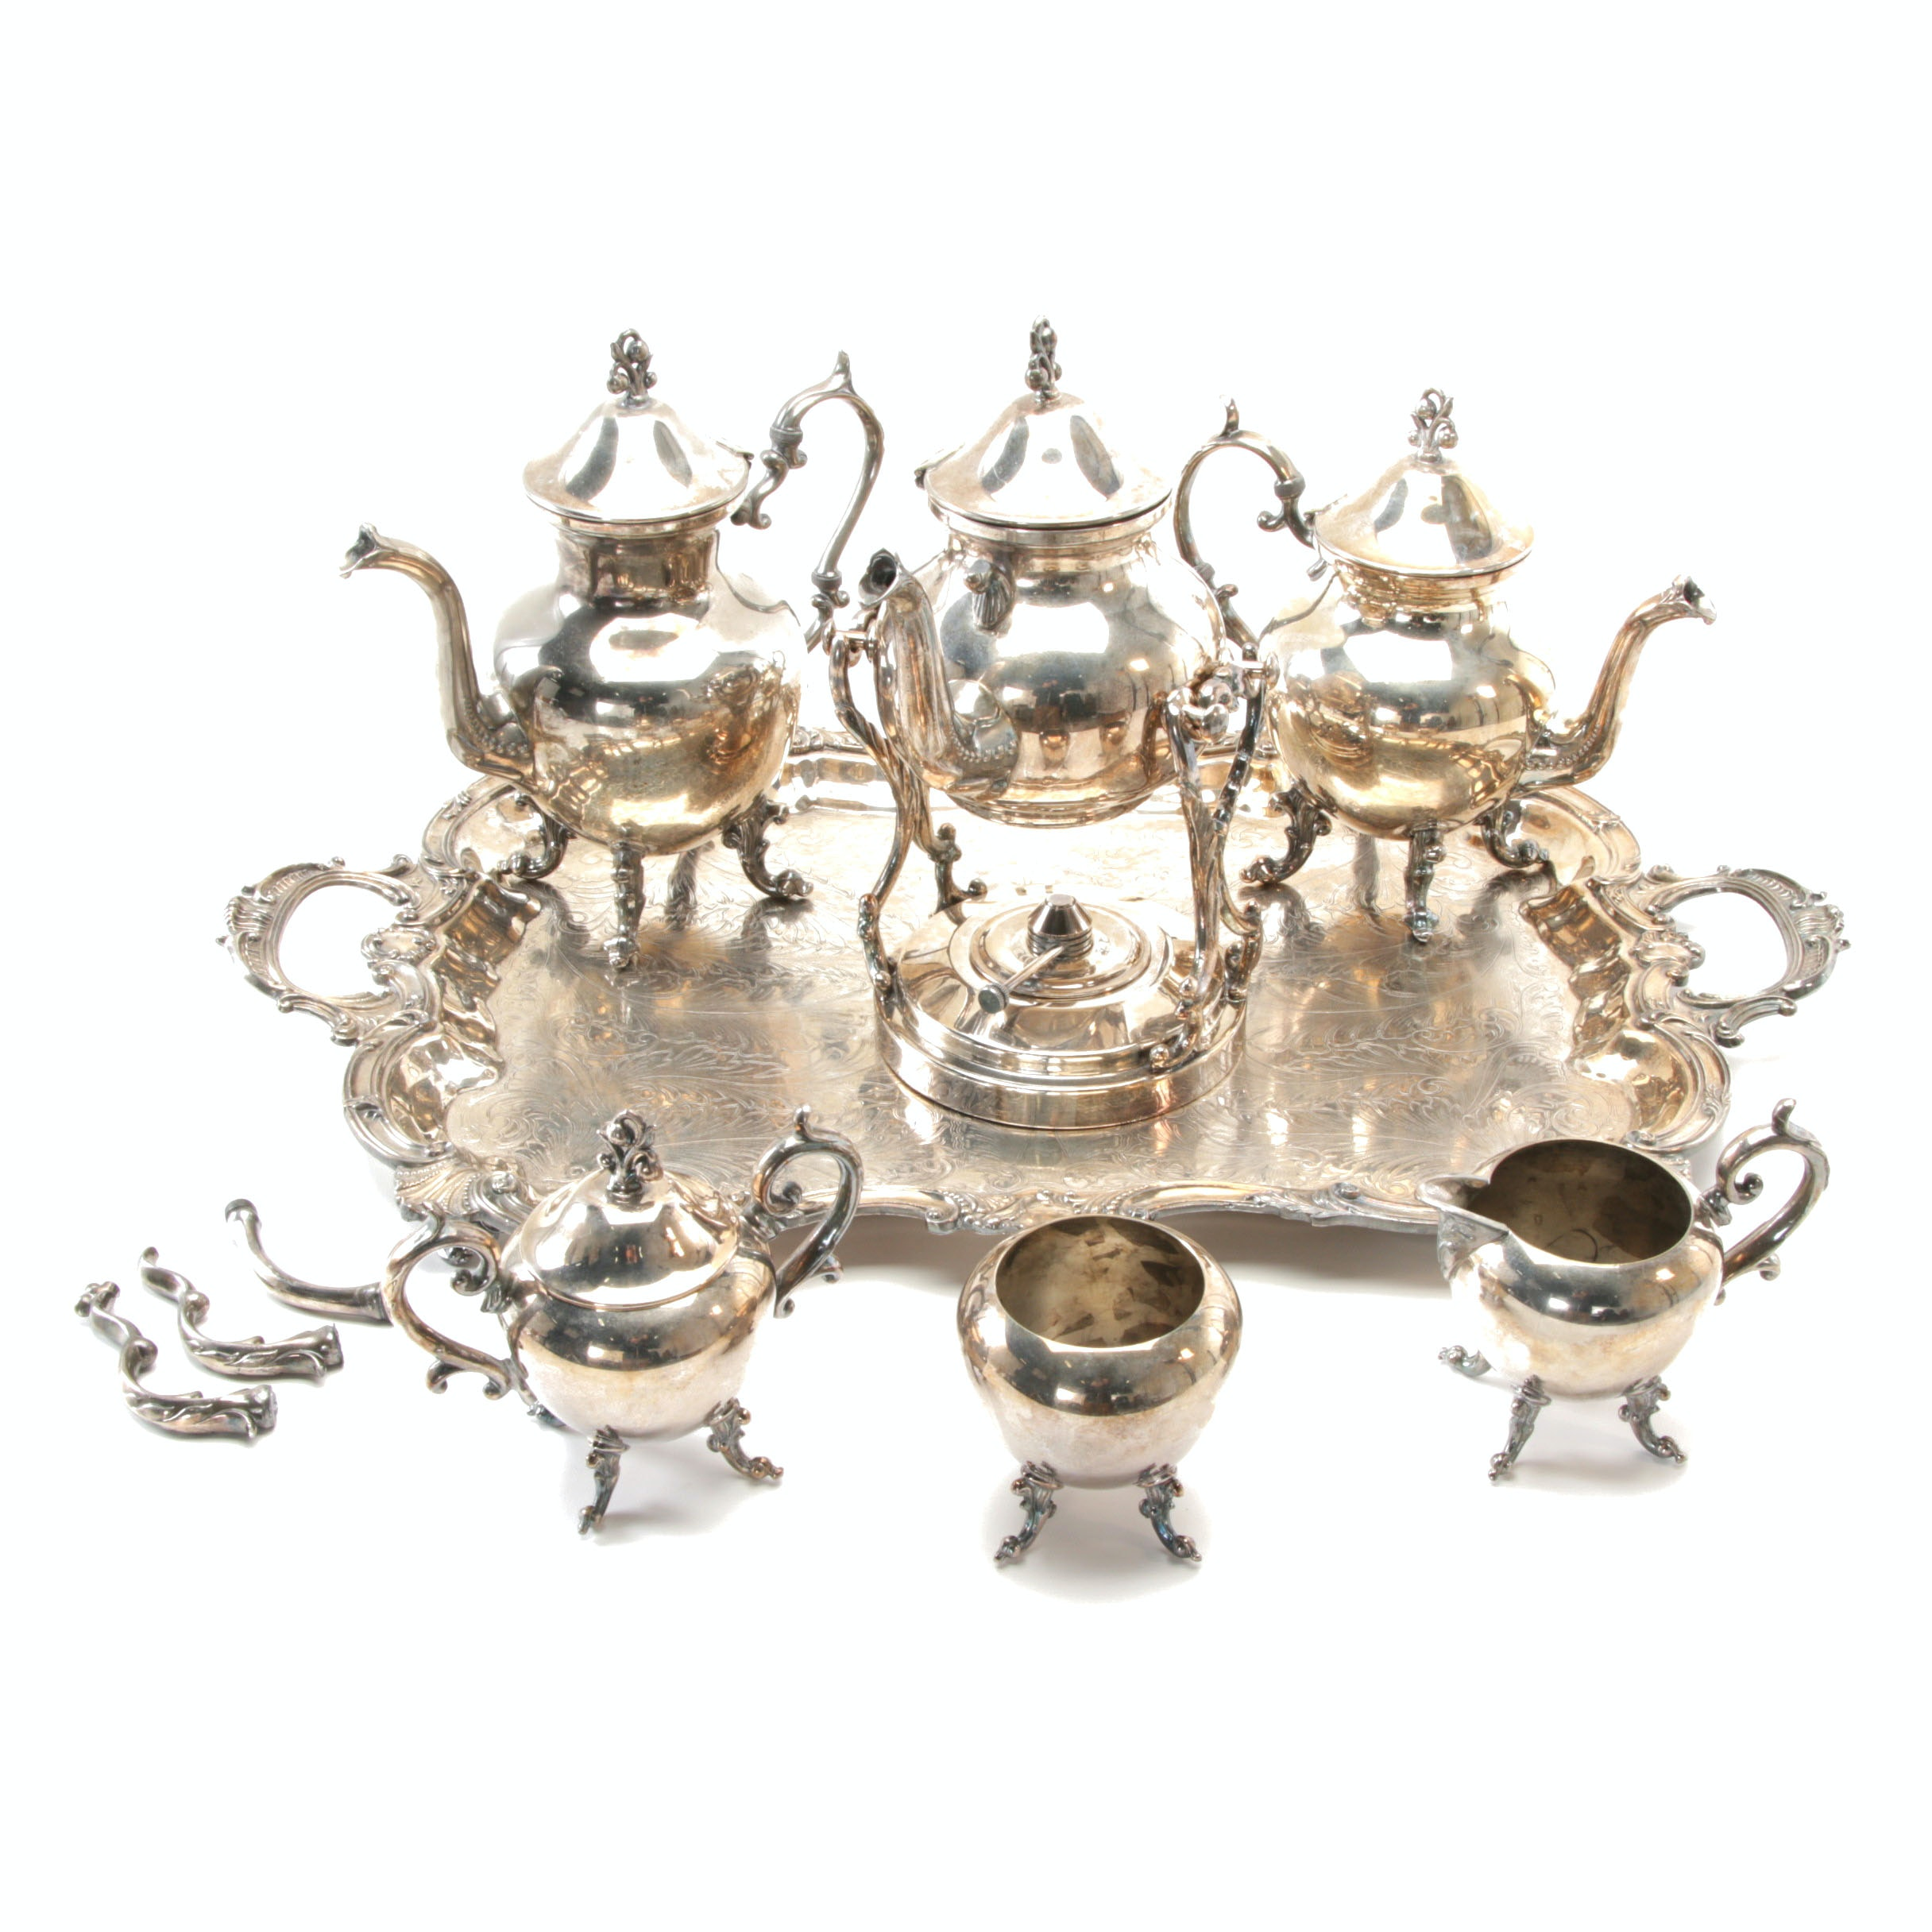 Silver Plated Birmingham Silver Co. Tea Service with Convertible Candelabras